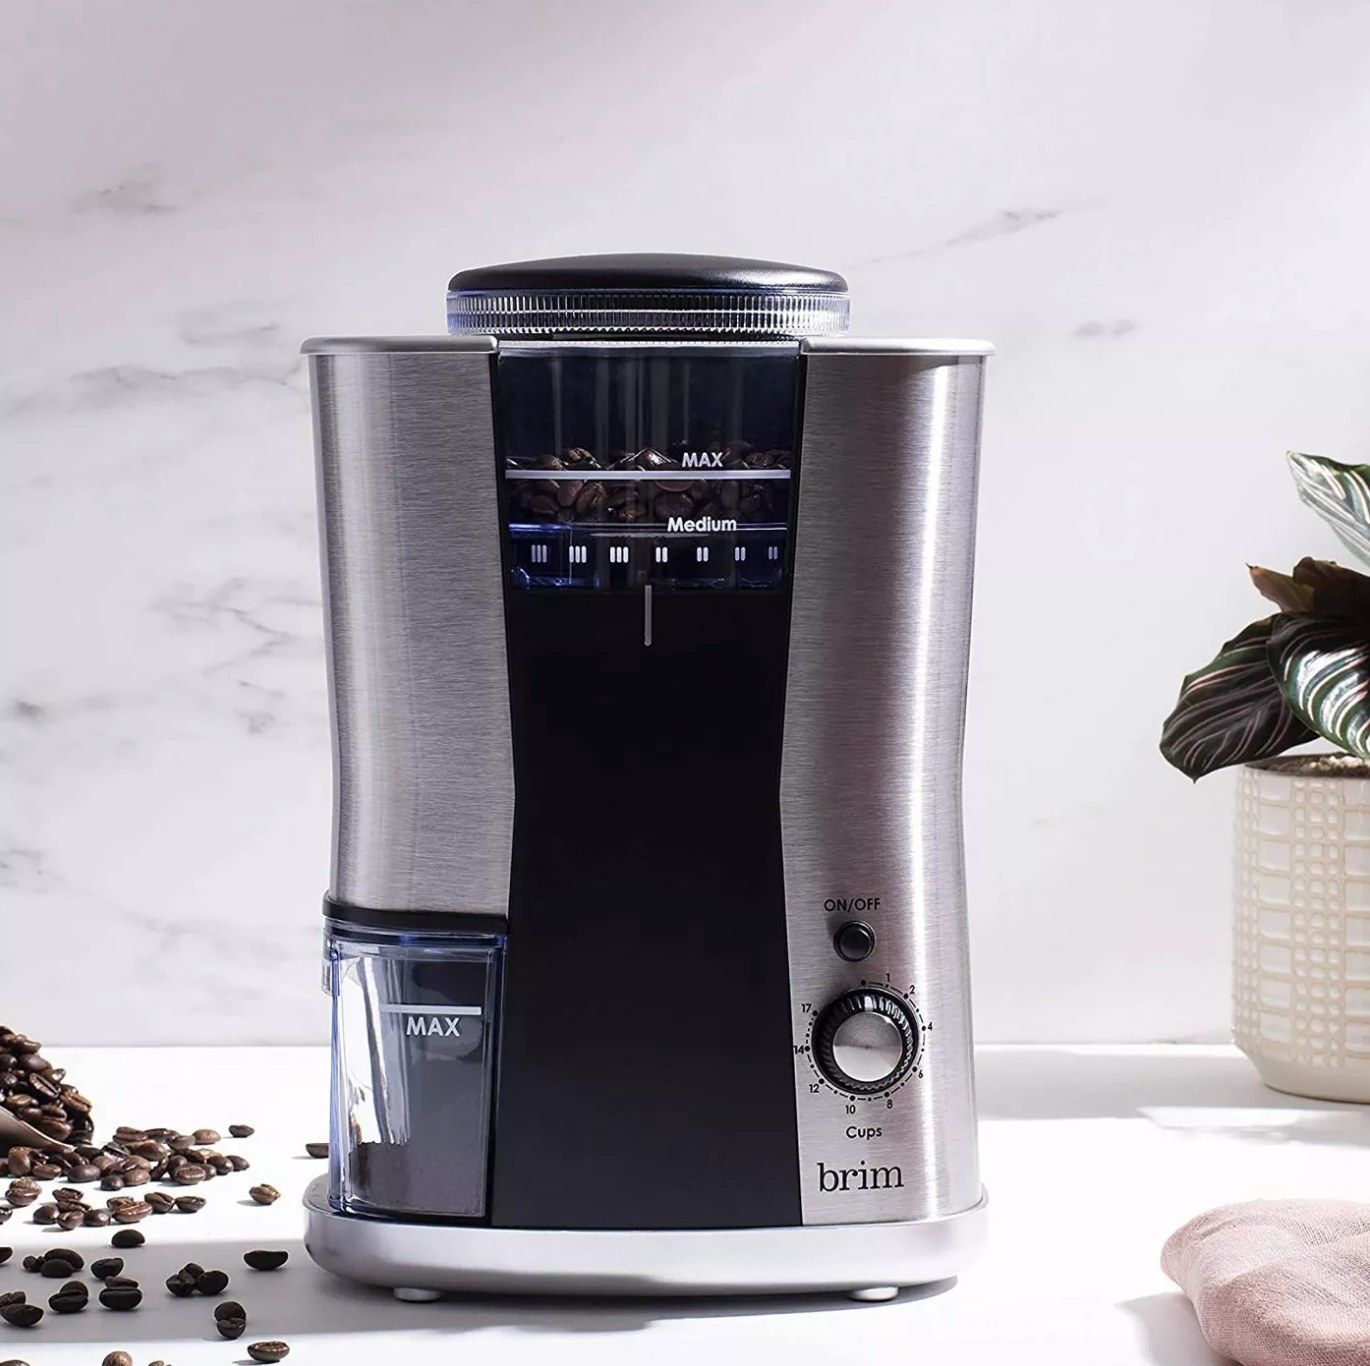 The conical burr grinder